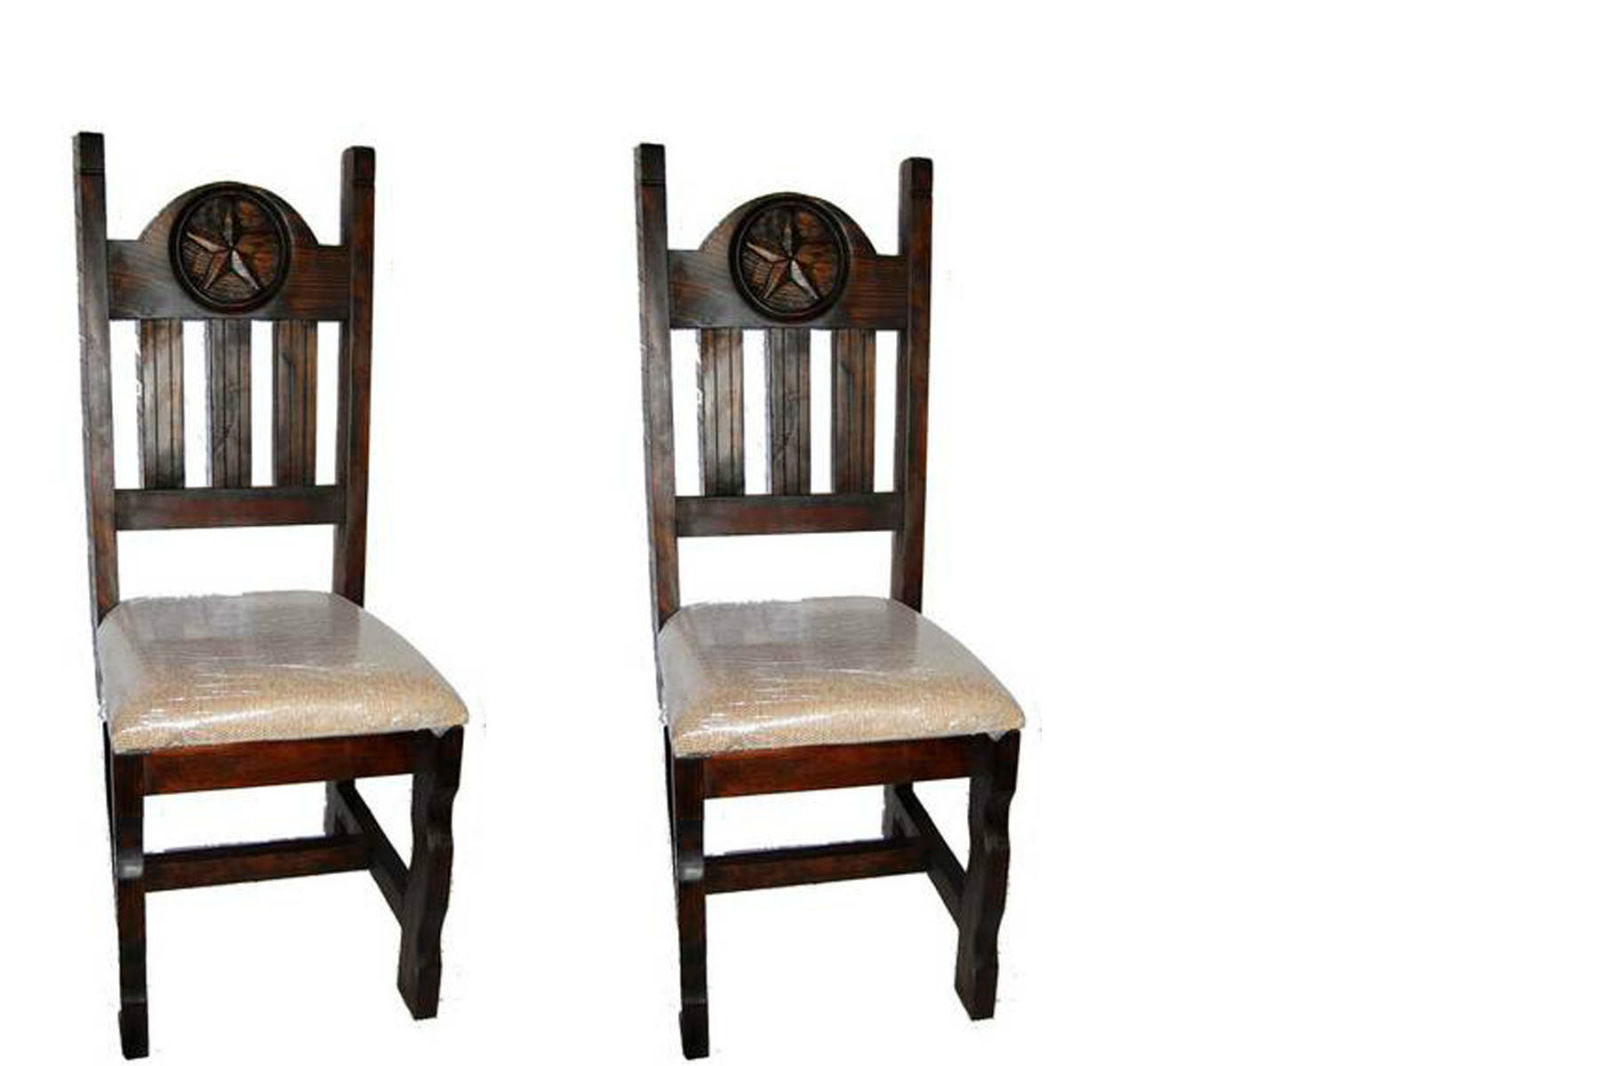 Set of Two Dark Star Padded Seat Chair Real Solid Wood Rustic Western Cabin